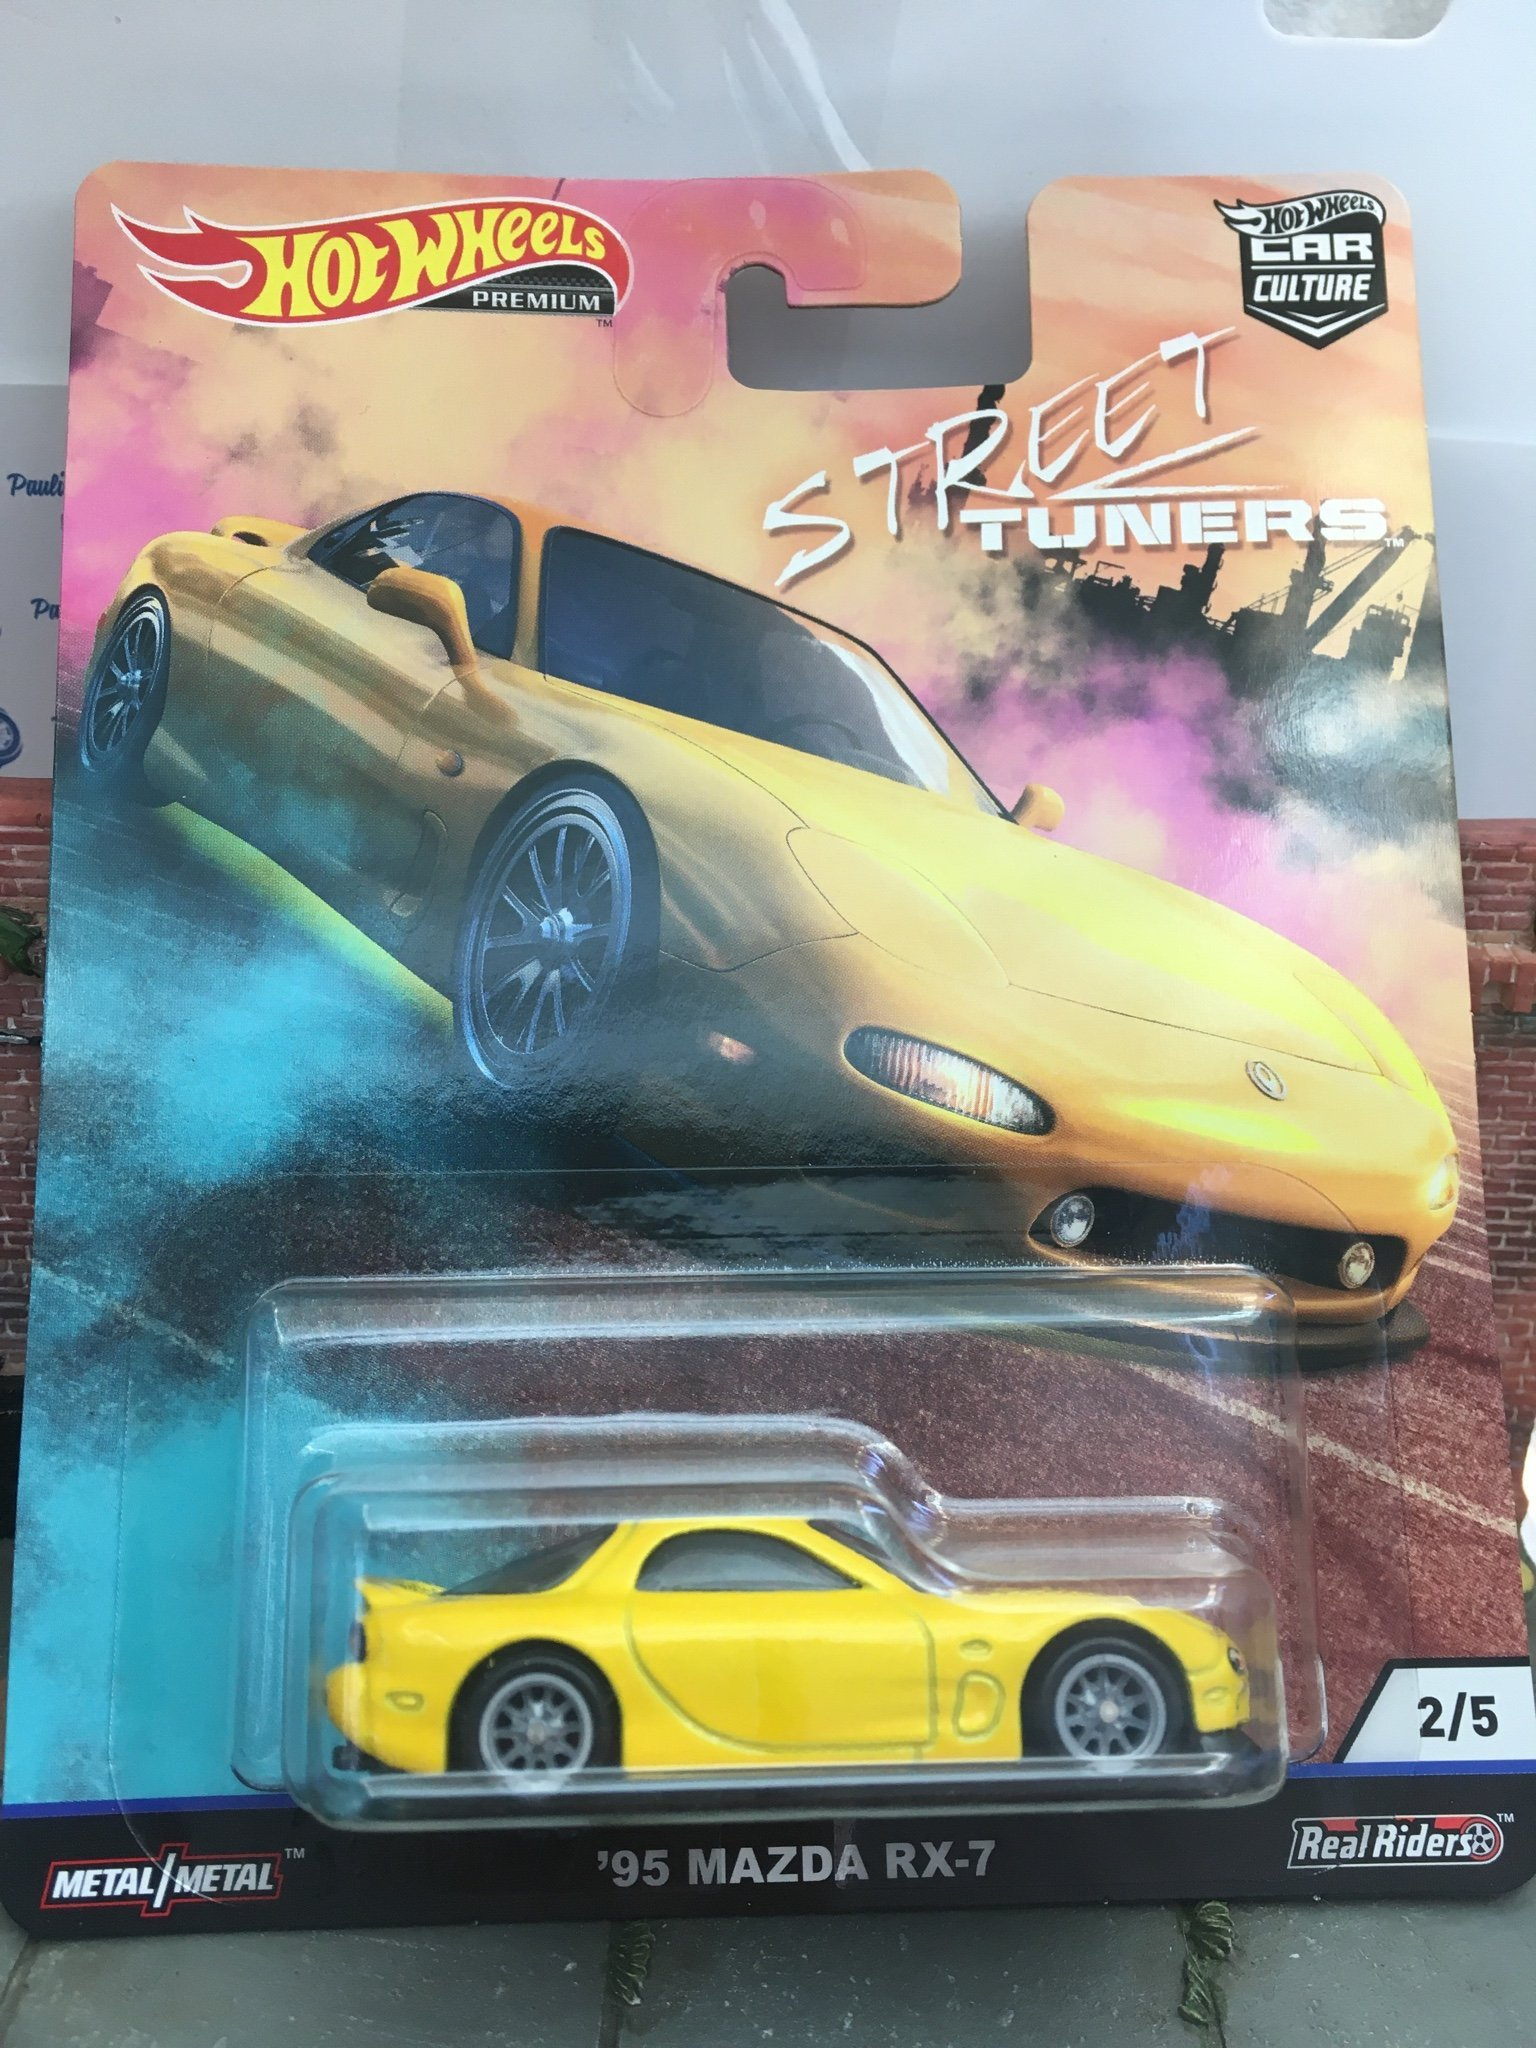 Mazda RX-7 Car Culture 1/64 Hot Wheels